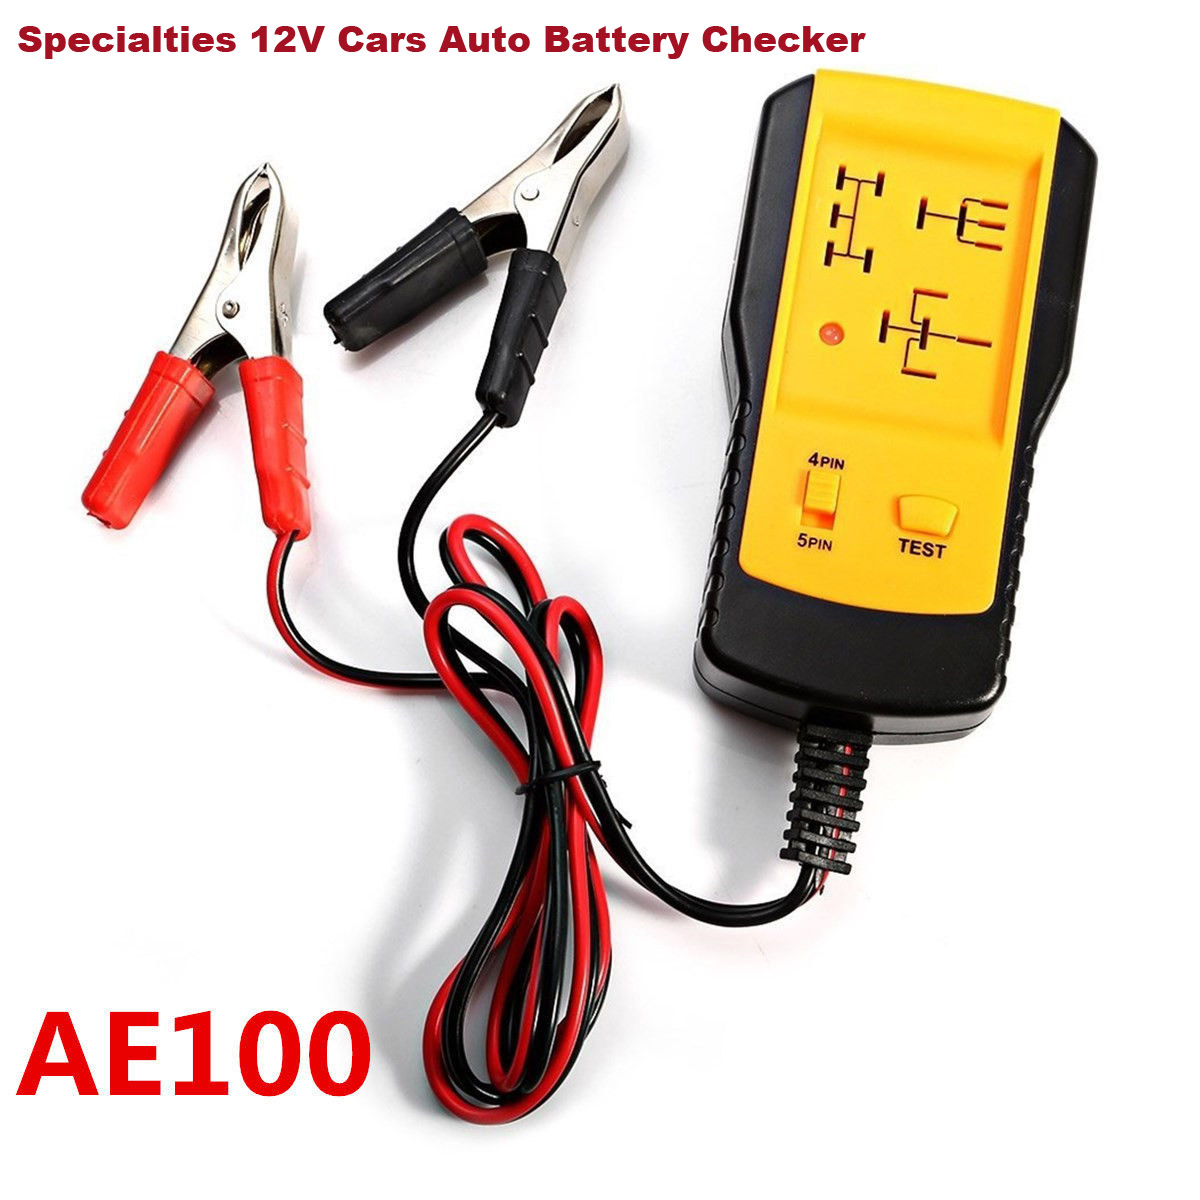 hight resolution of details about specialties 12v cars auto battery checker electronic automotive relay tester